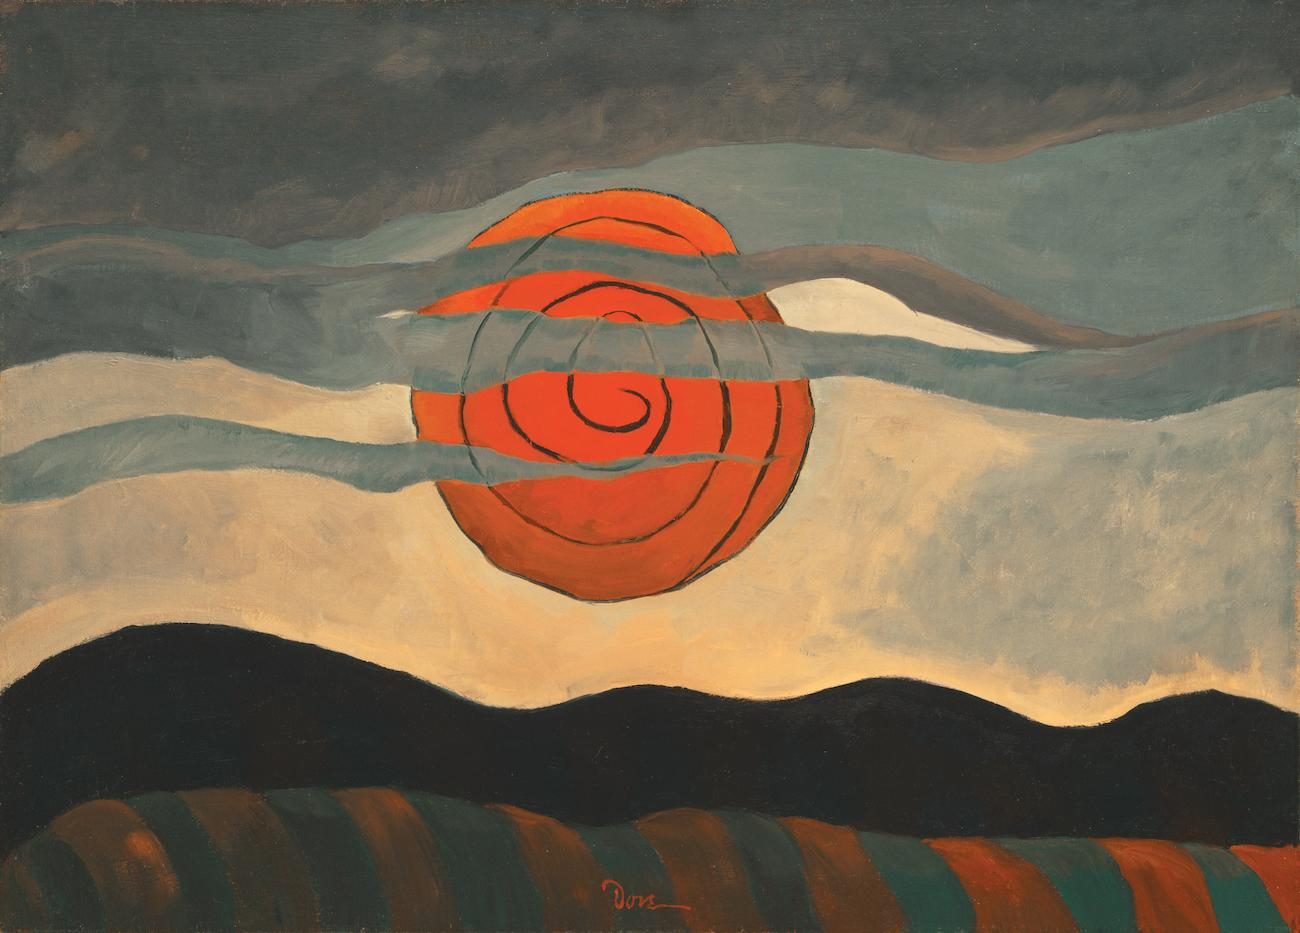 'Red Sun' (1935) by Arthur Dove / Image courtesy of the Taft Museum of Art // Published: 5.1.19